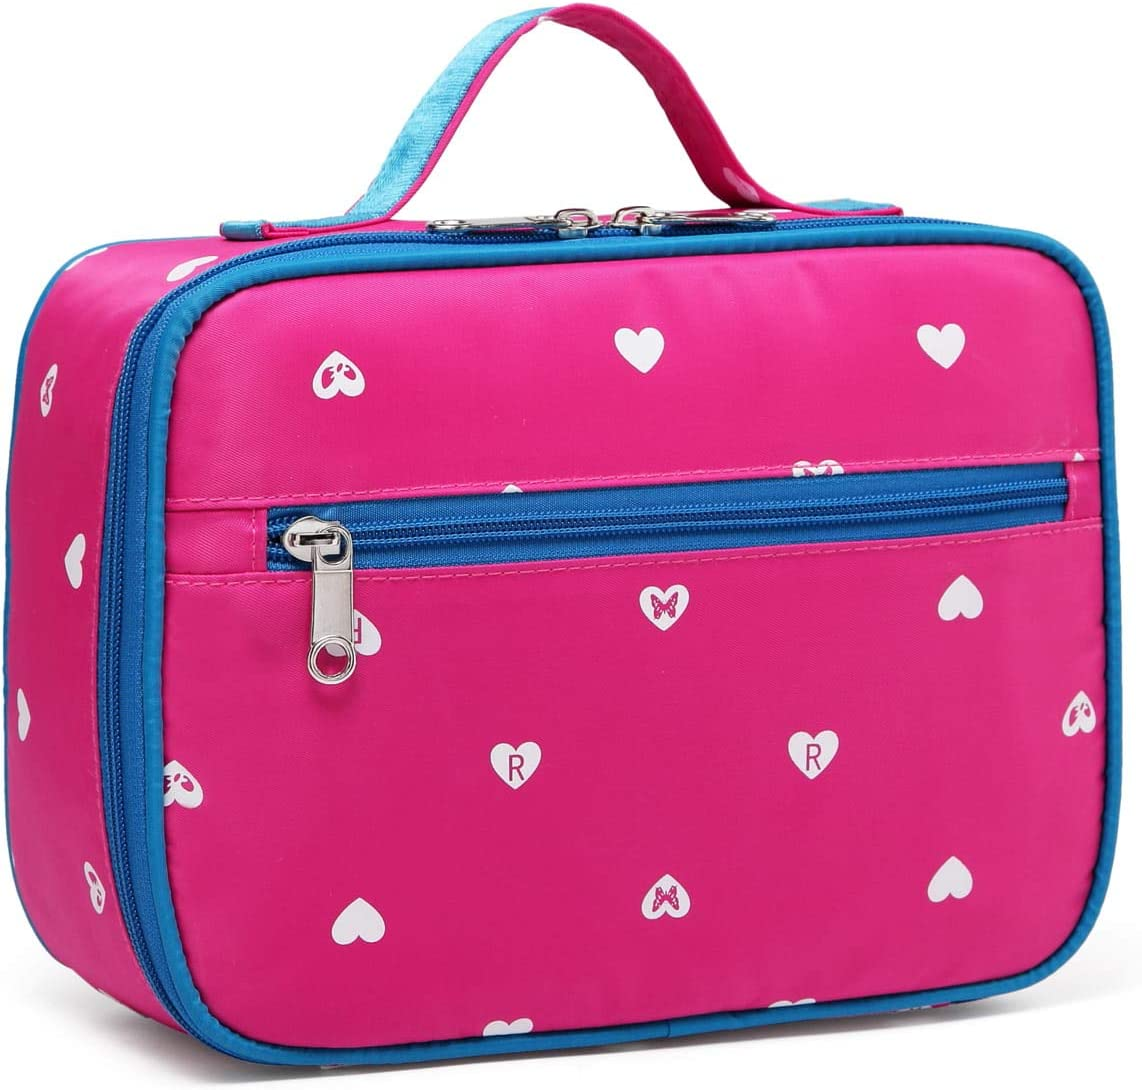 BLUEFAIRY Kids Insulated Lunch Box for Little Girls Lunchbags Lunch Bags Carrier Food Cooler Carrying Case for School Outdoor with Handle Zipper Pockets (Hot Pink)